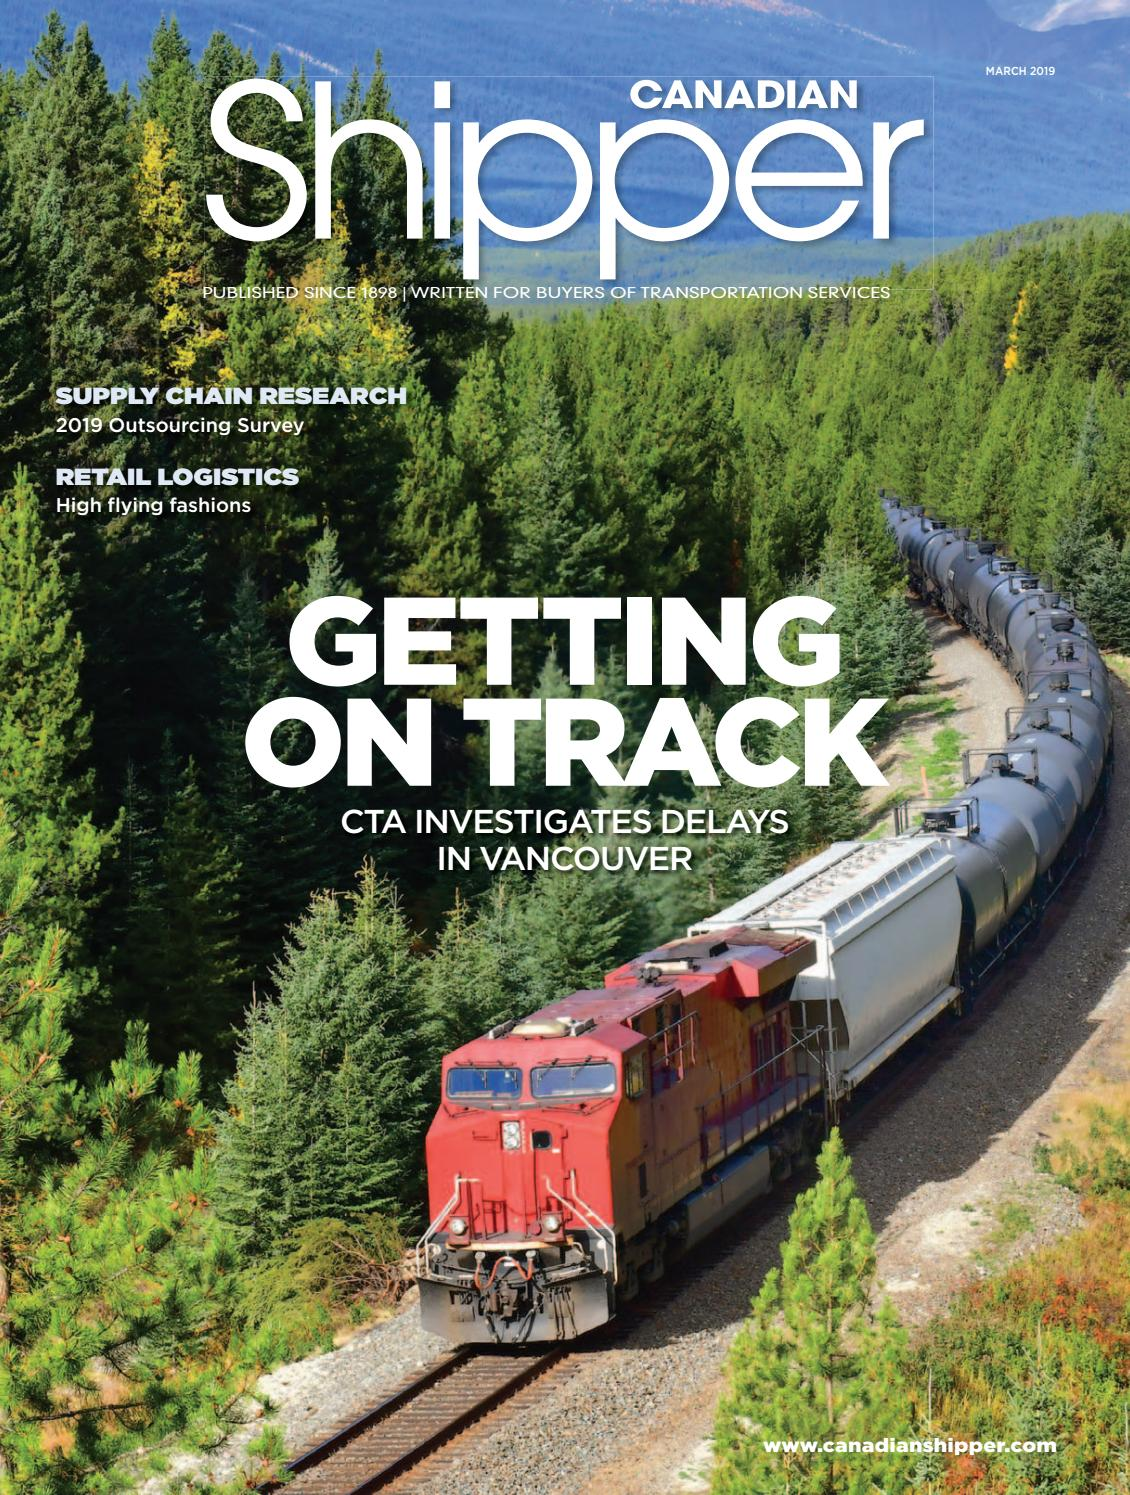 Canadian Shipper March 2019 by Annex Business Media - issuu